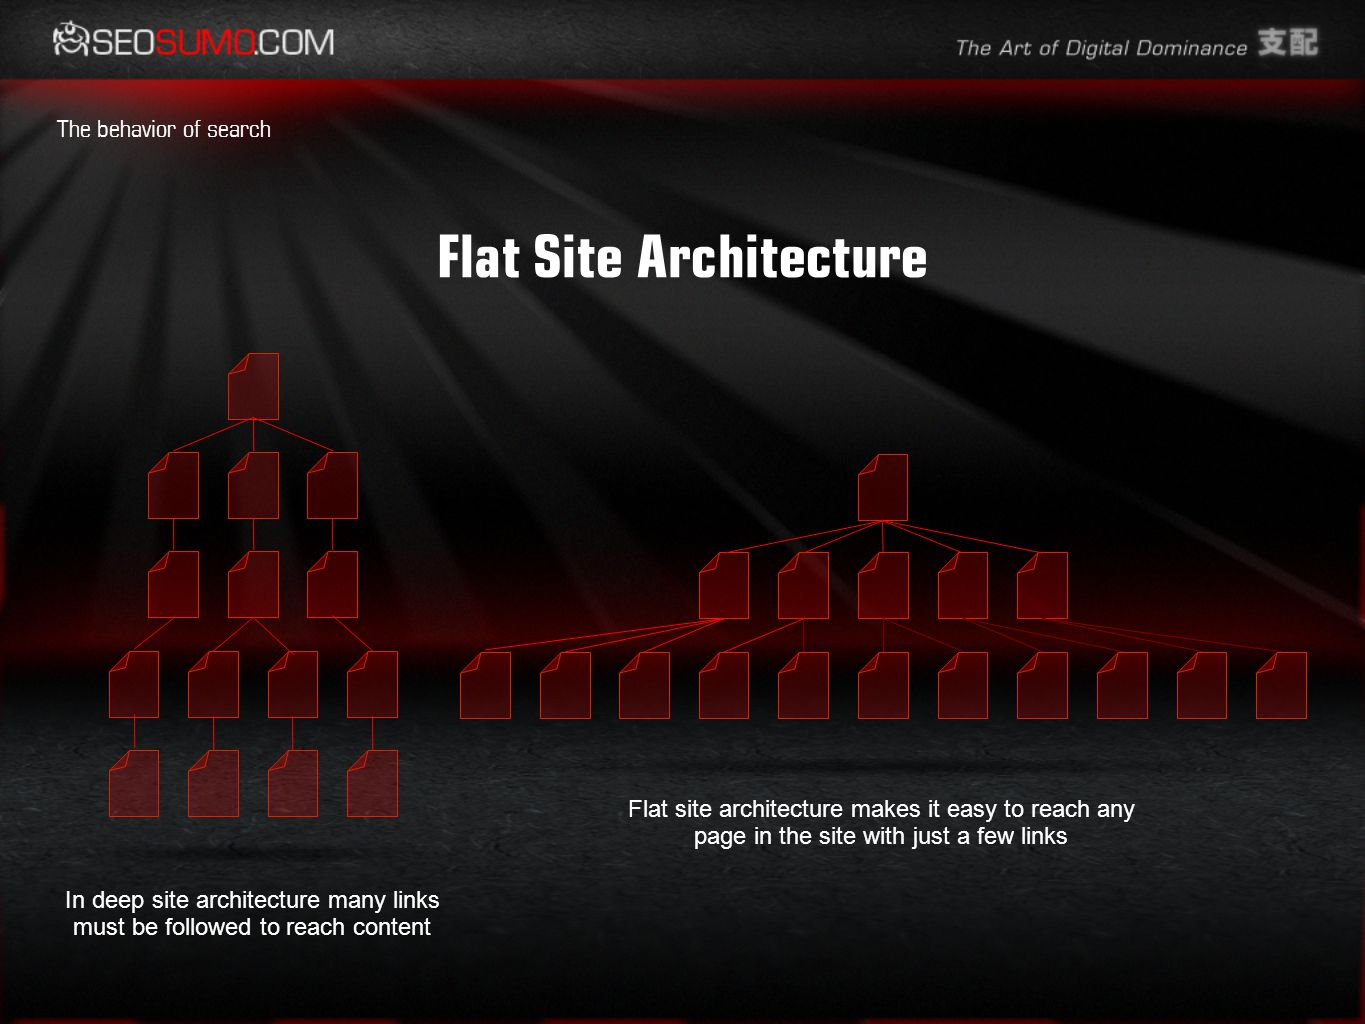 Flat Site Architecture The behavior of search In deep site architecture many links must be followed to reach content Flat site architecture makes it easy to reach any page in the site with just a few links